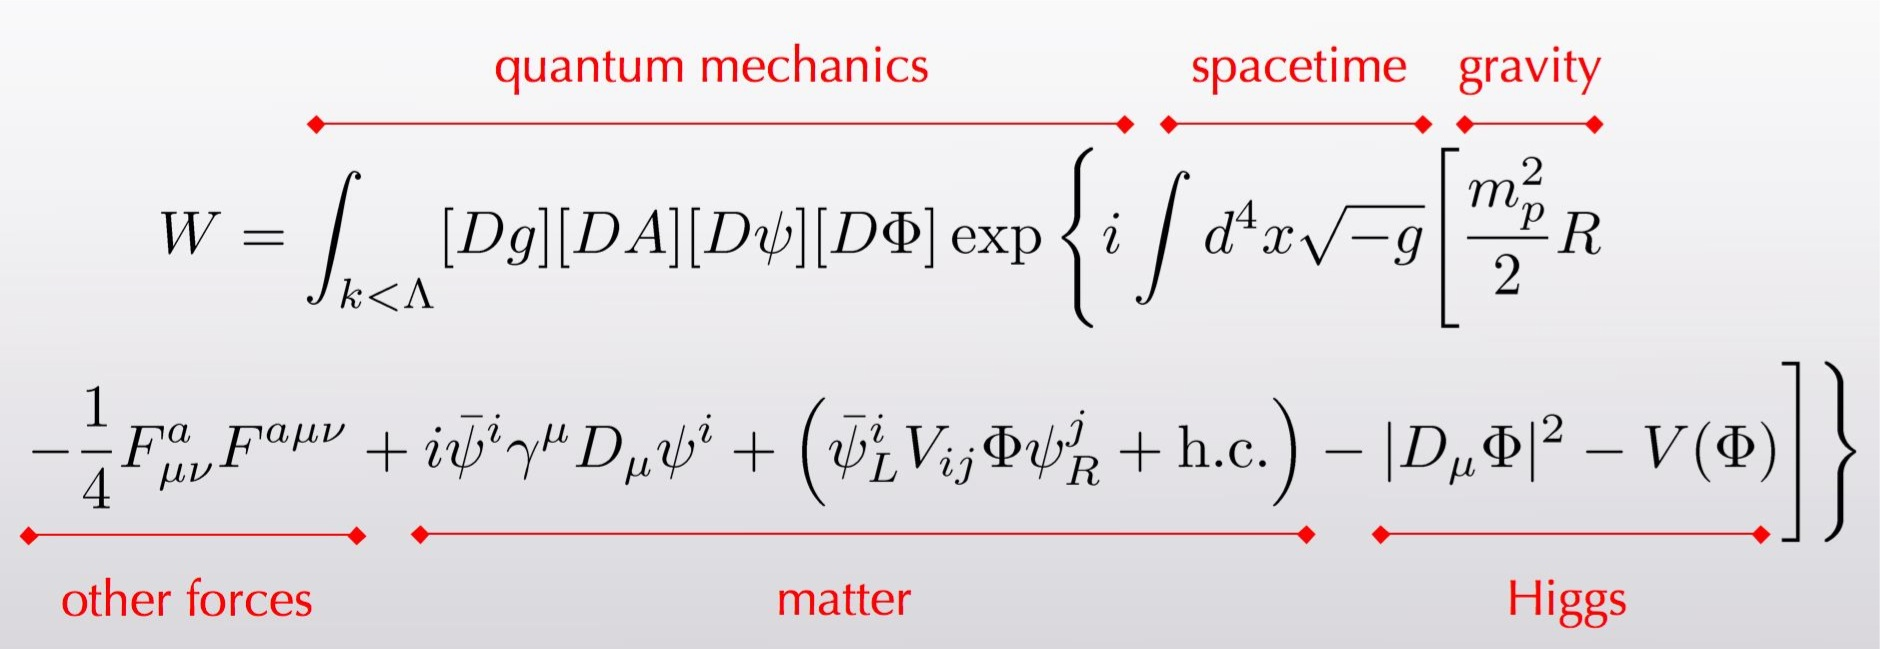 Transcript: an equation for W, the amplitude of a quantum transition, including parts from quantum mechanics, spacetime, gravity, other forces, matter, and Higgs.